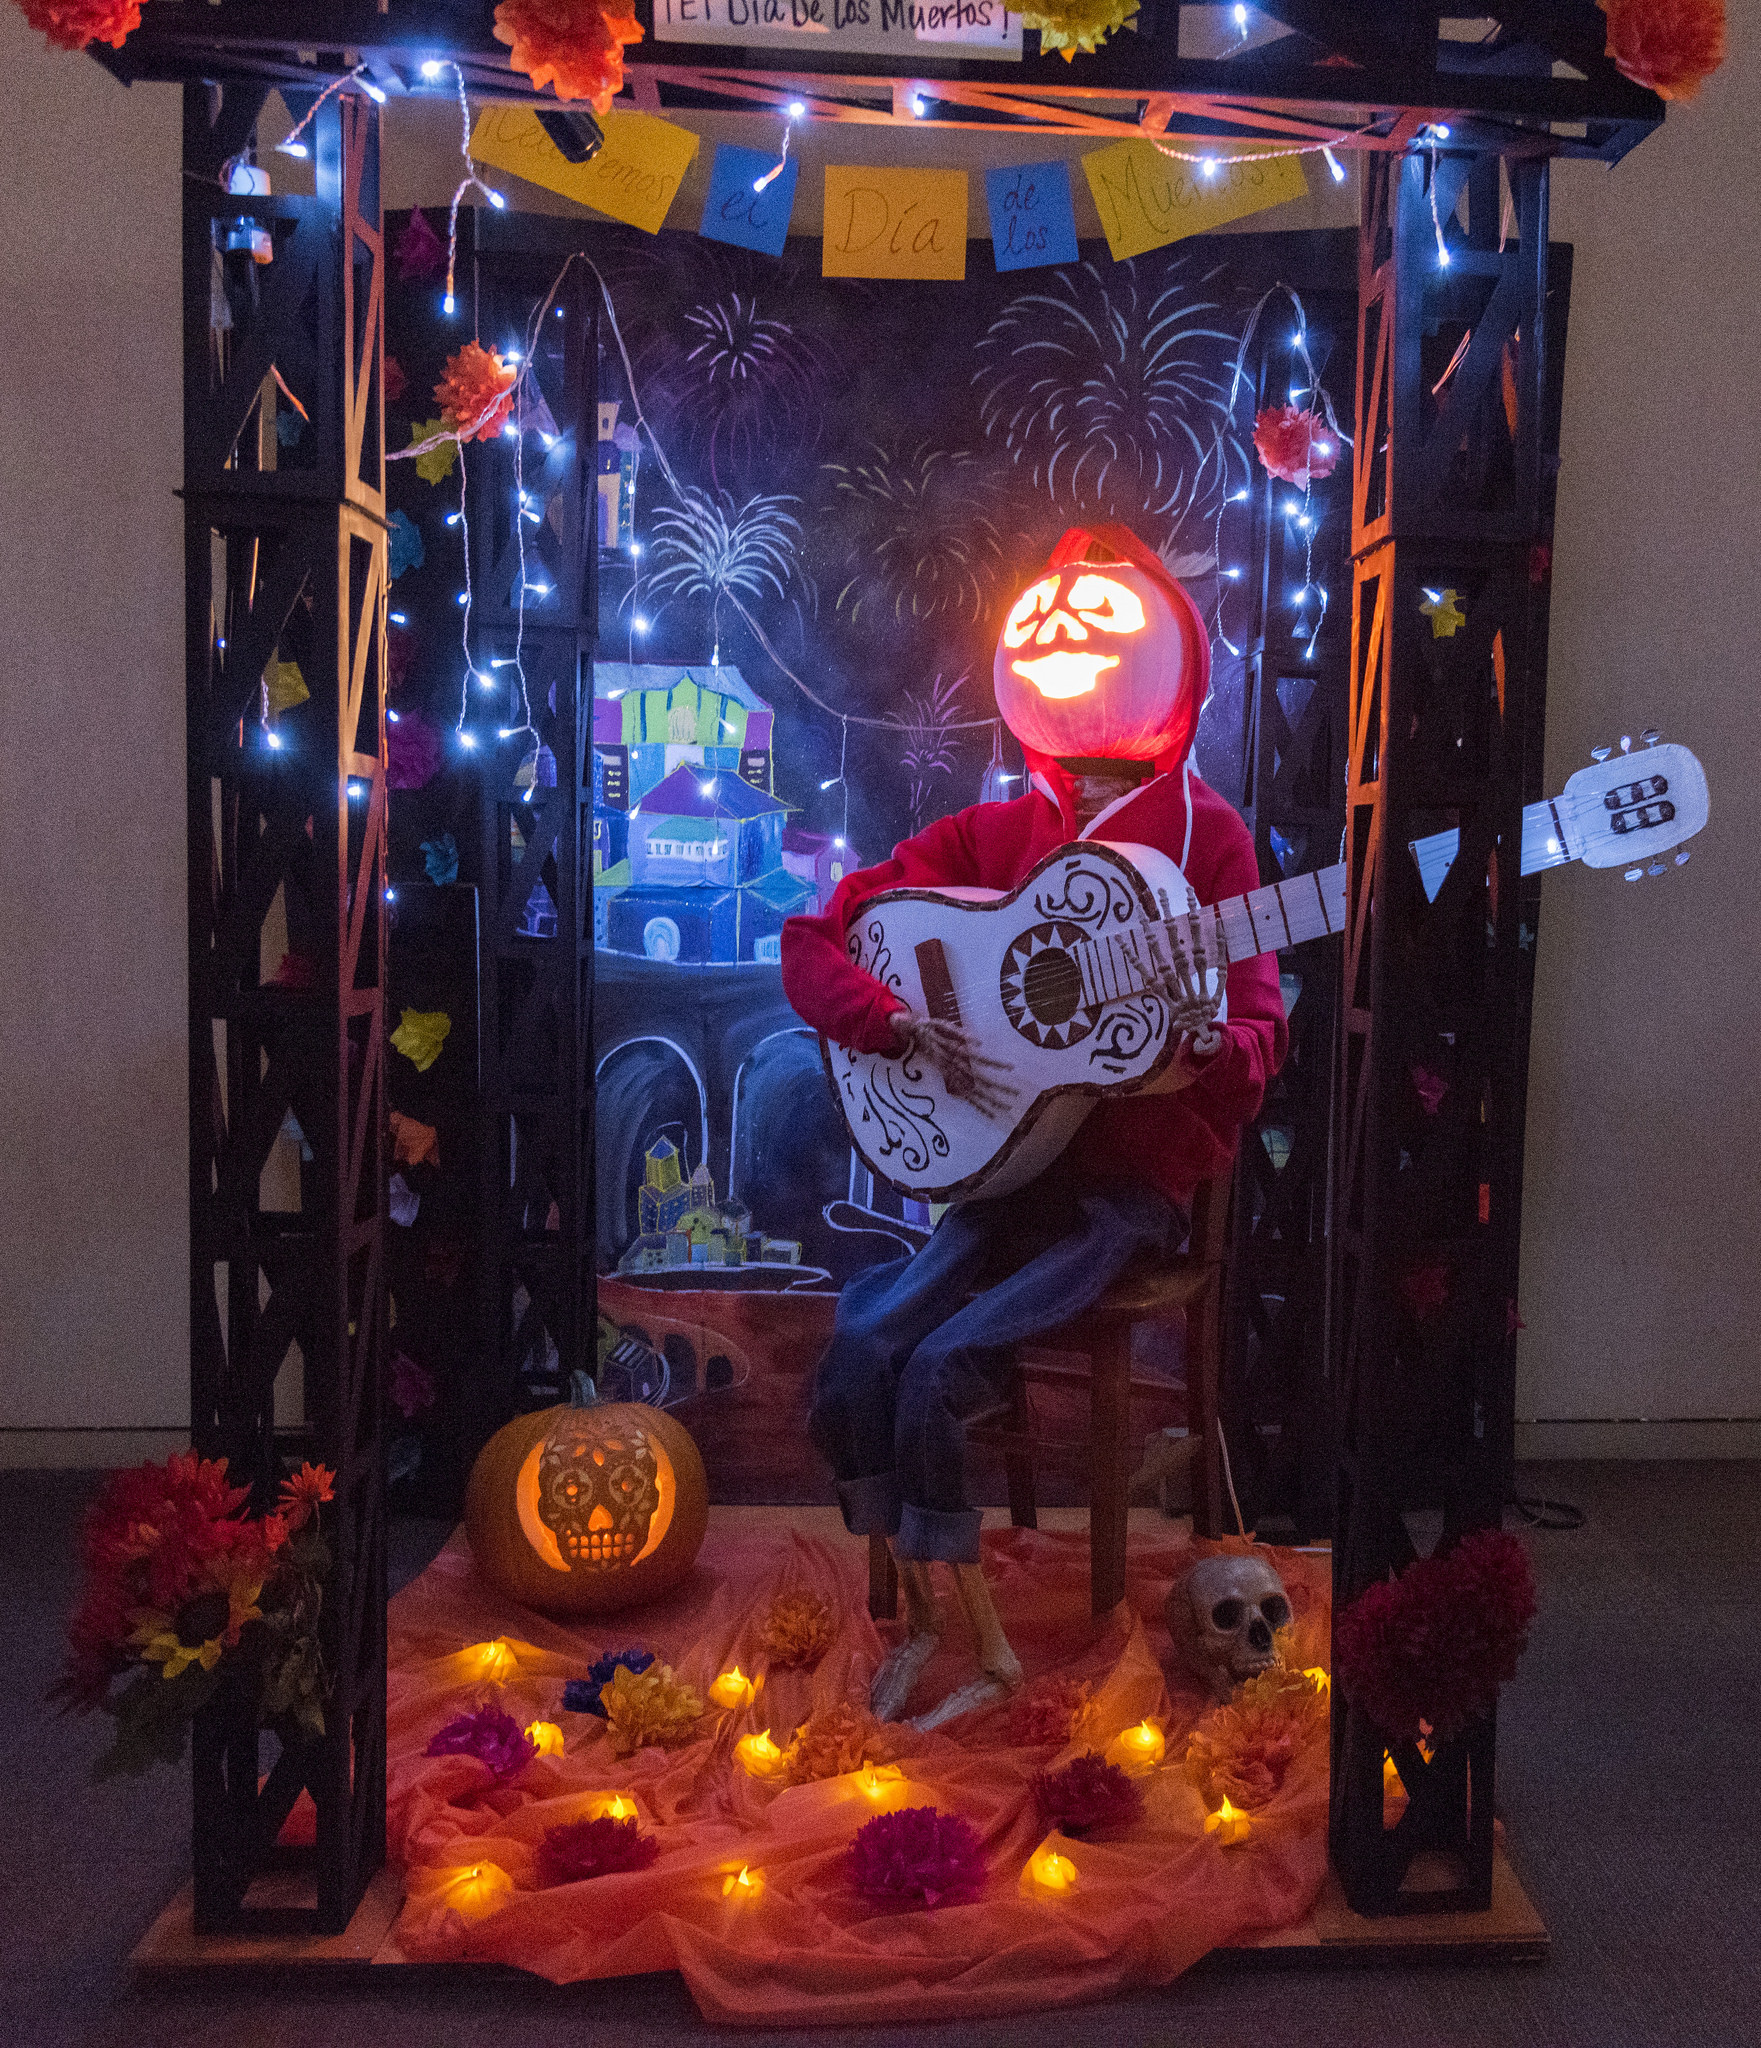 Pumpkin modeled after Miguel from the movie 'Coco' strumming a guitar